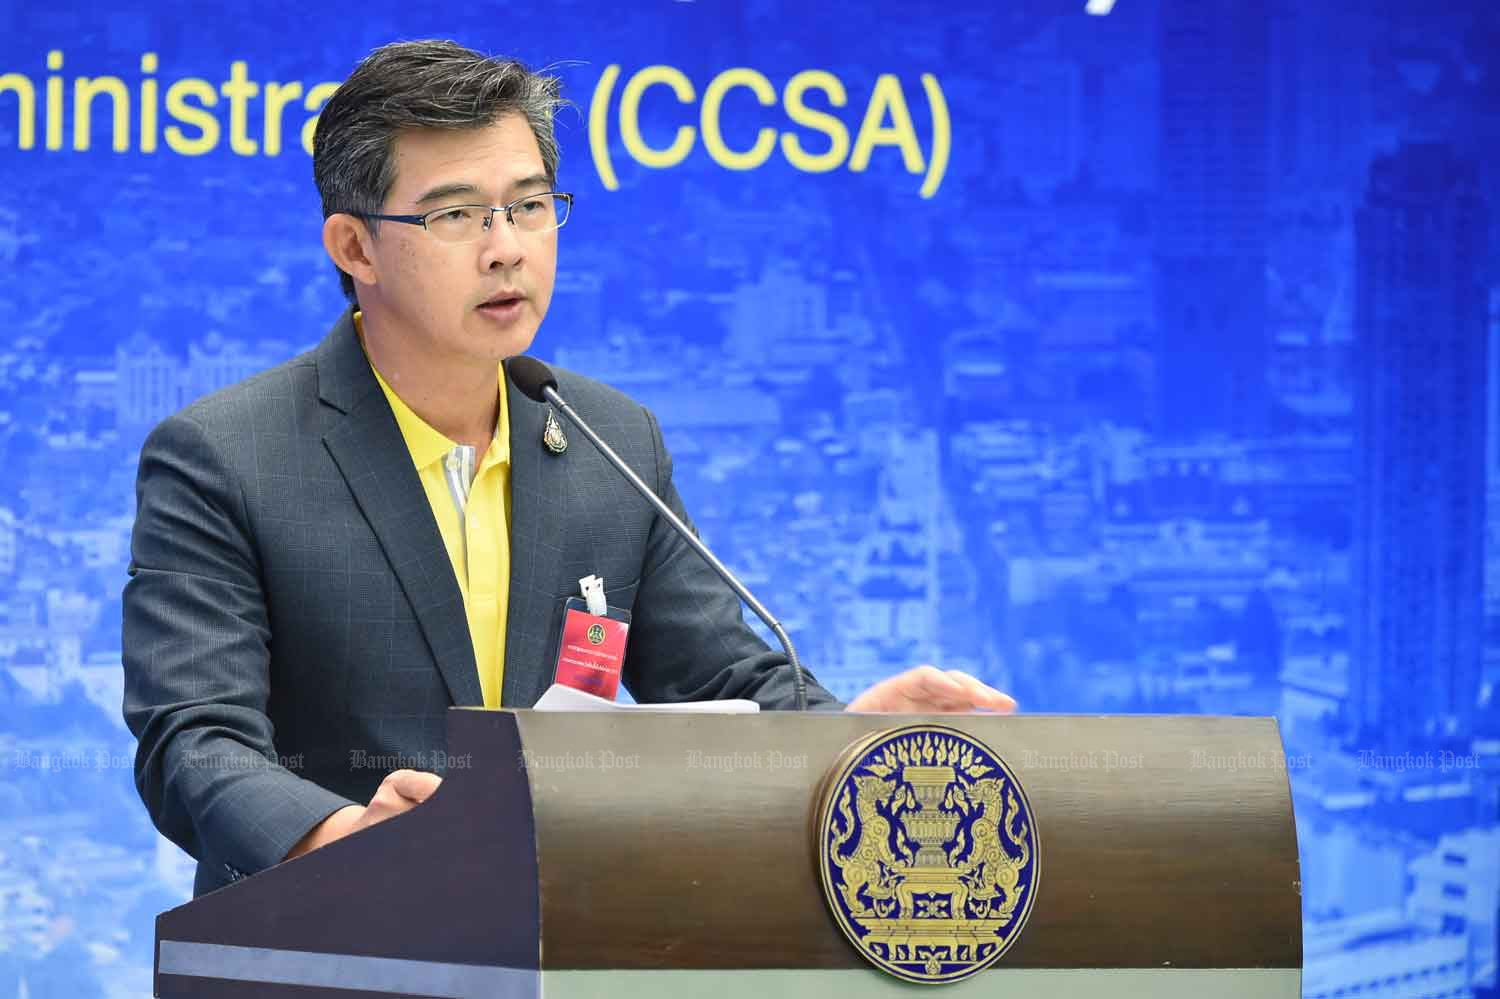 Dr Taweesilp Visanuyothin, spokesman of the Centre for Covid-19 Situation Administration, speaks to reporters at Government House in Bangkok. (CCSA photo)